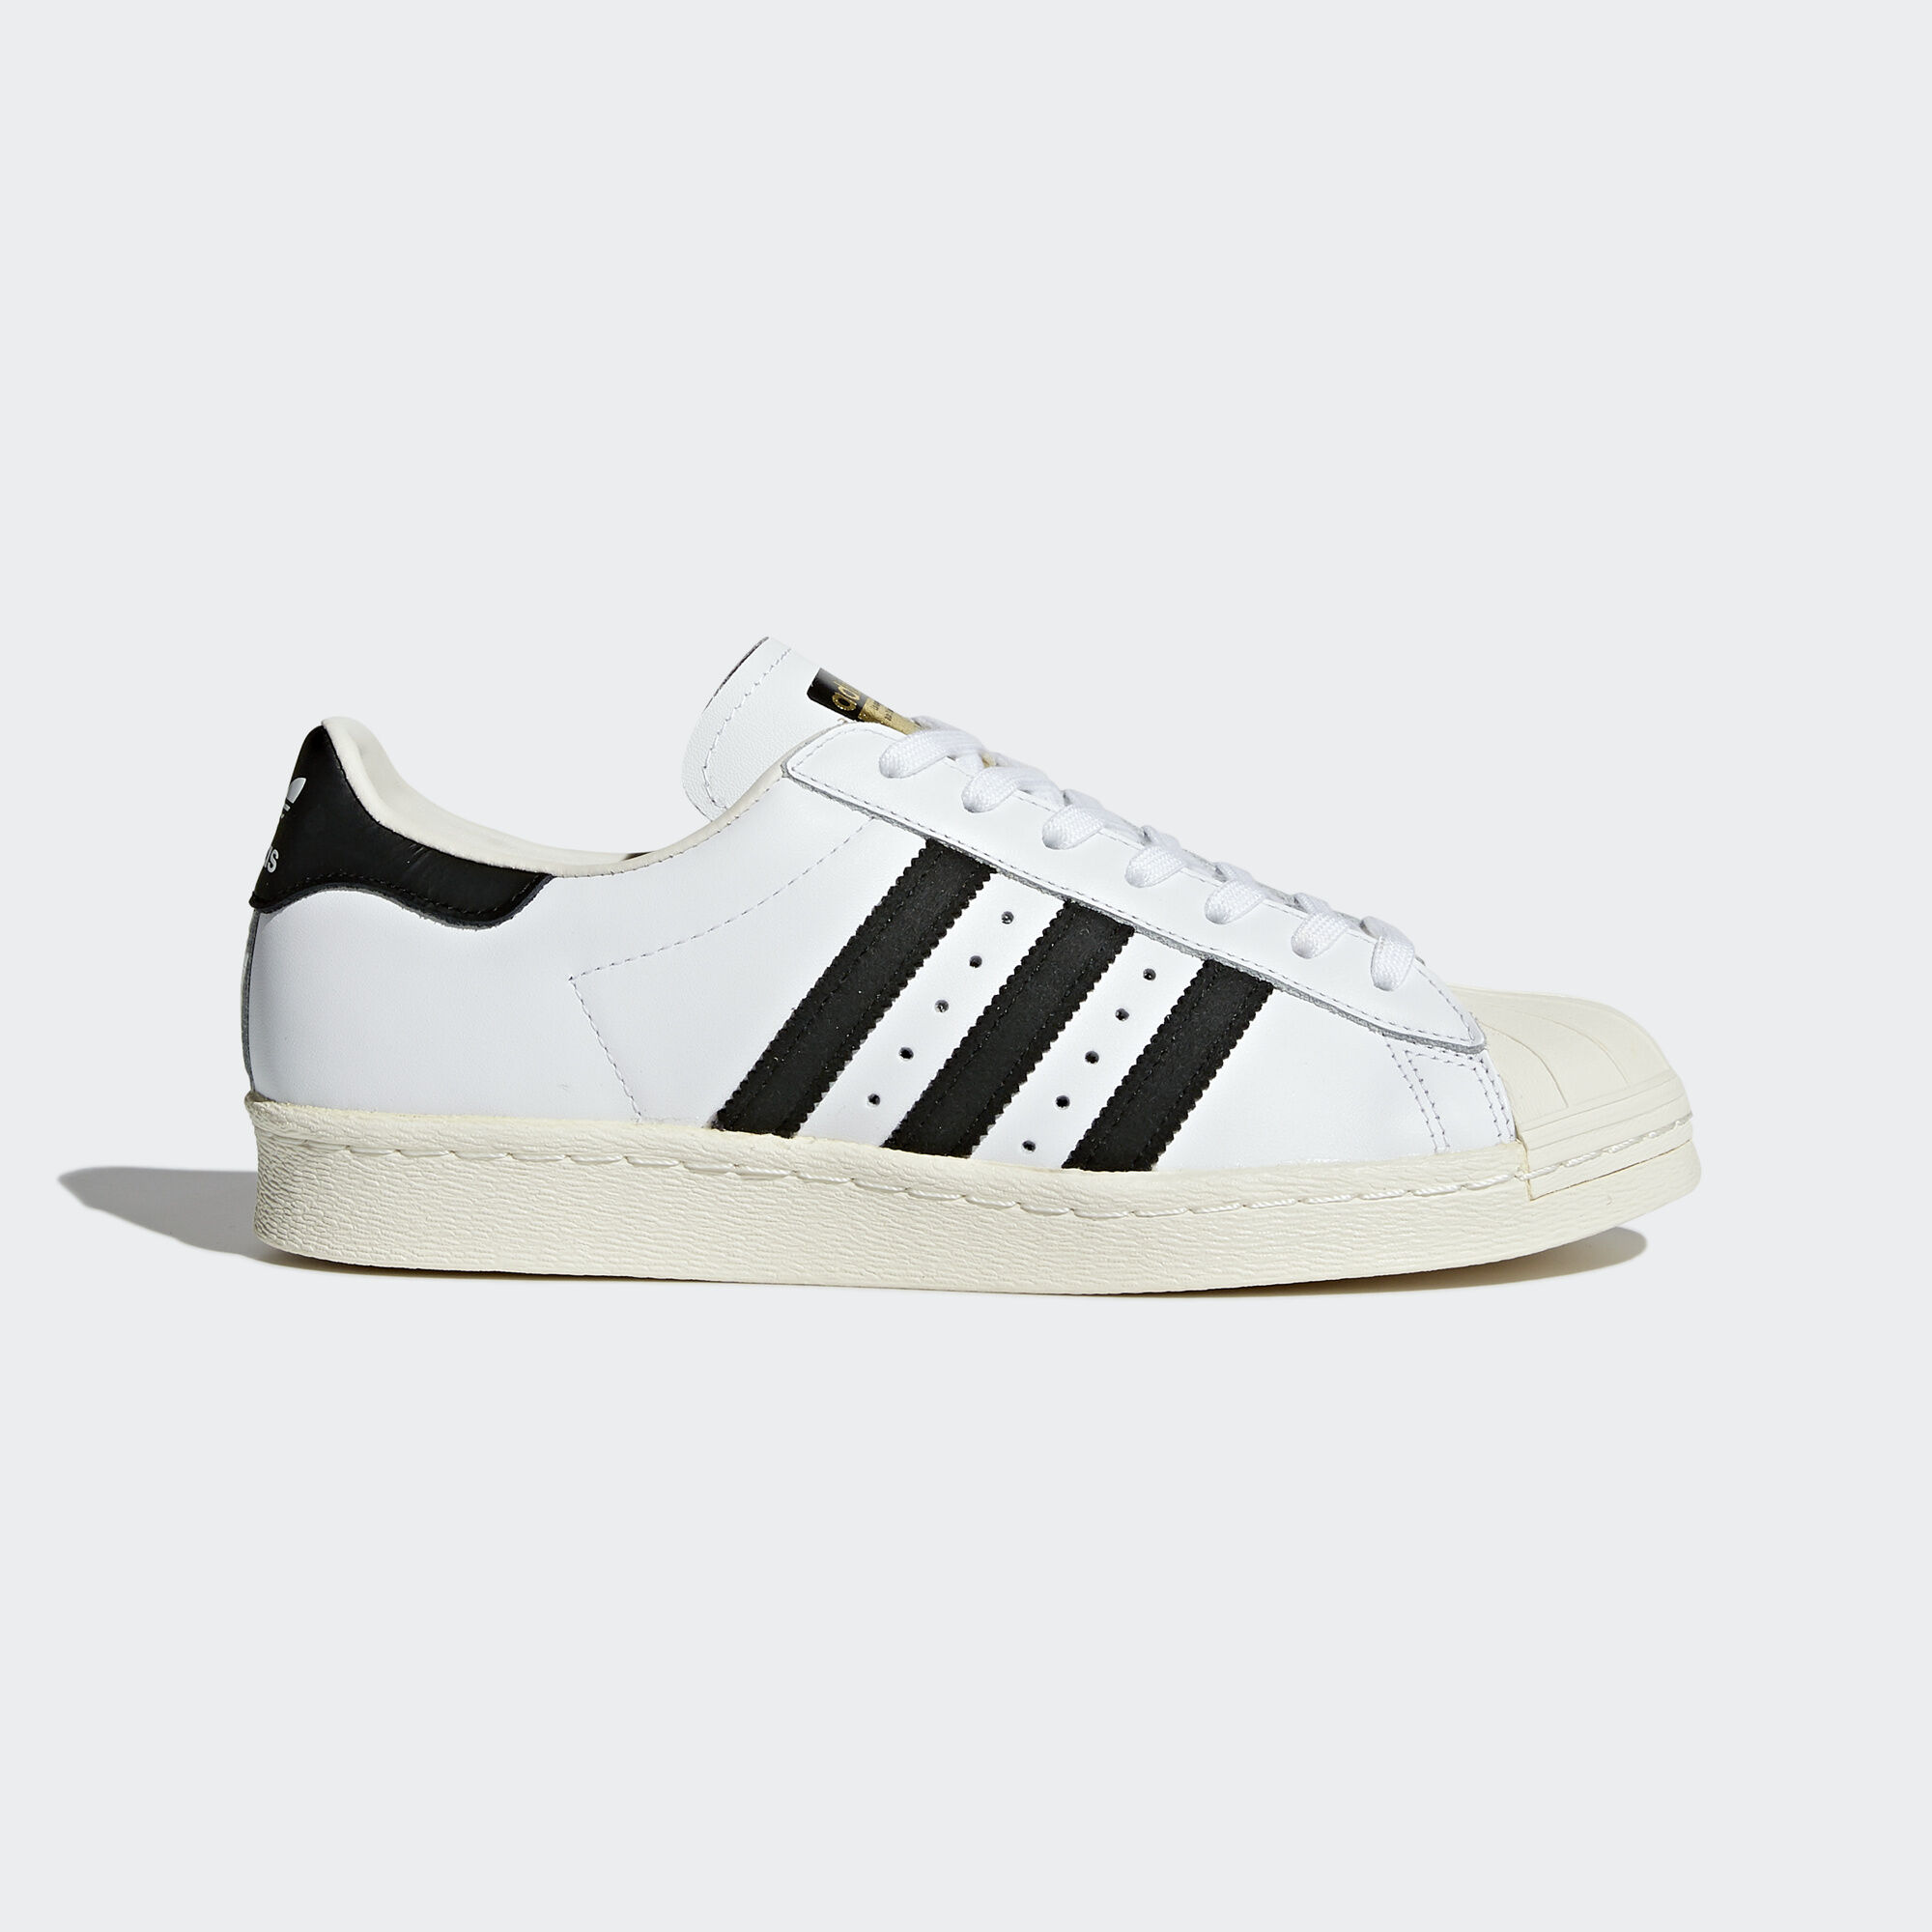 adidas Superstar Foundation Shoes adidas Thailand